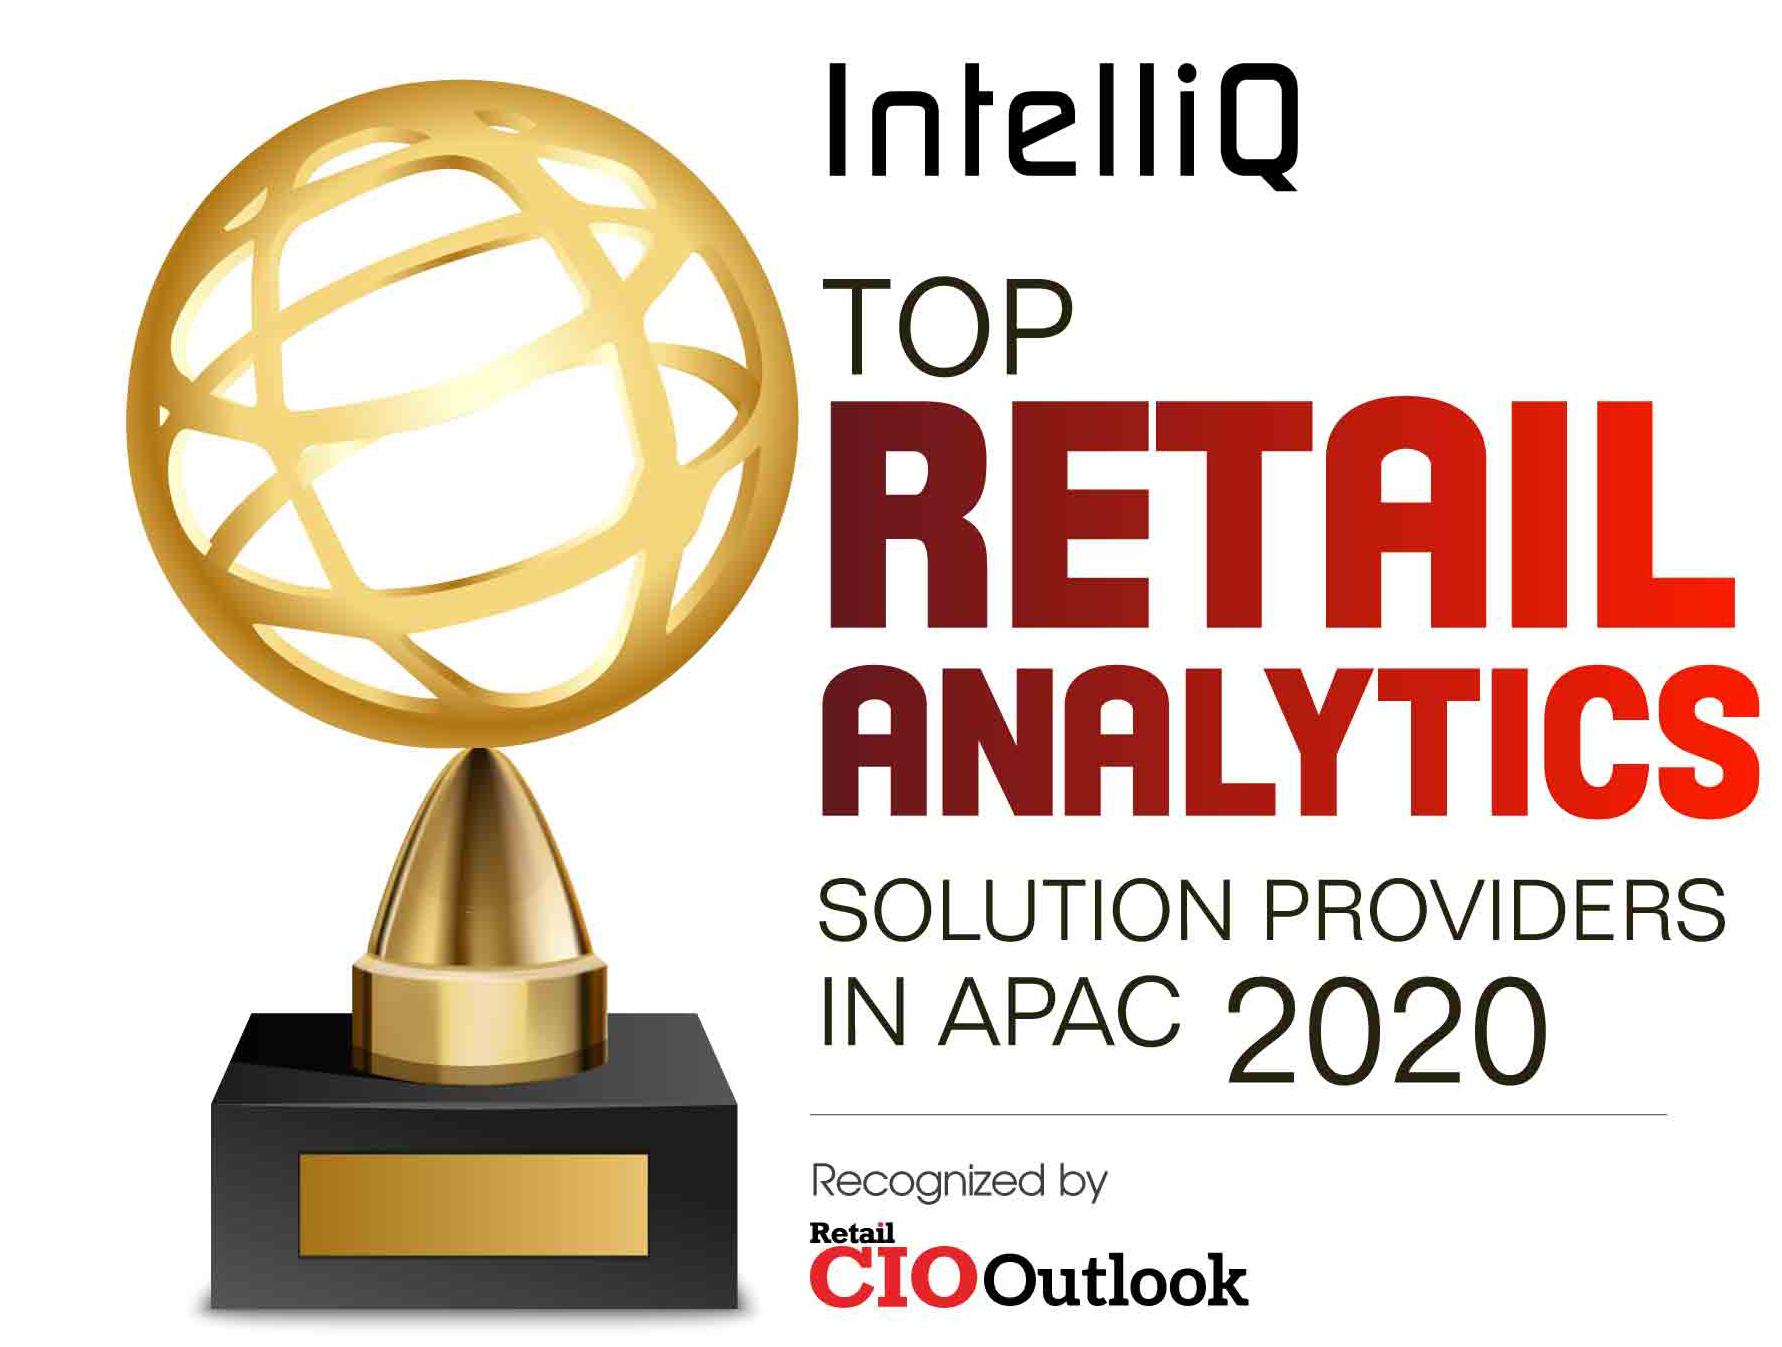 Top 10 Retail Analytics Solution Companies in APAC - 2020